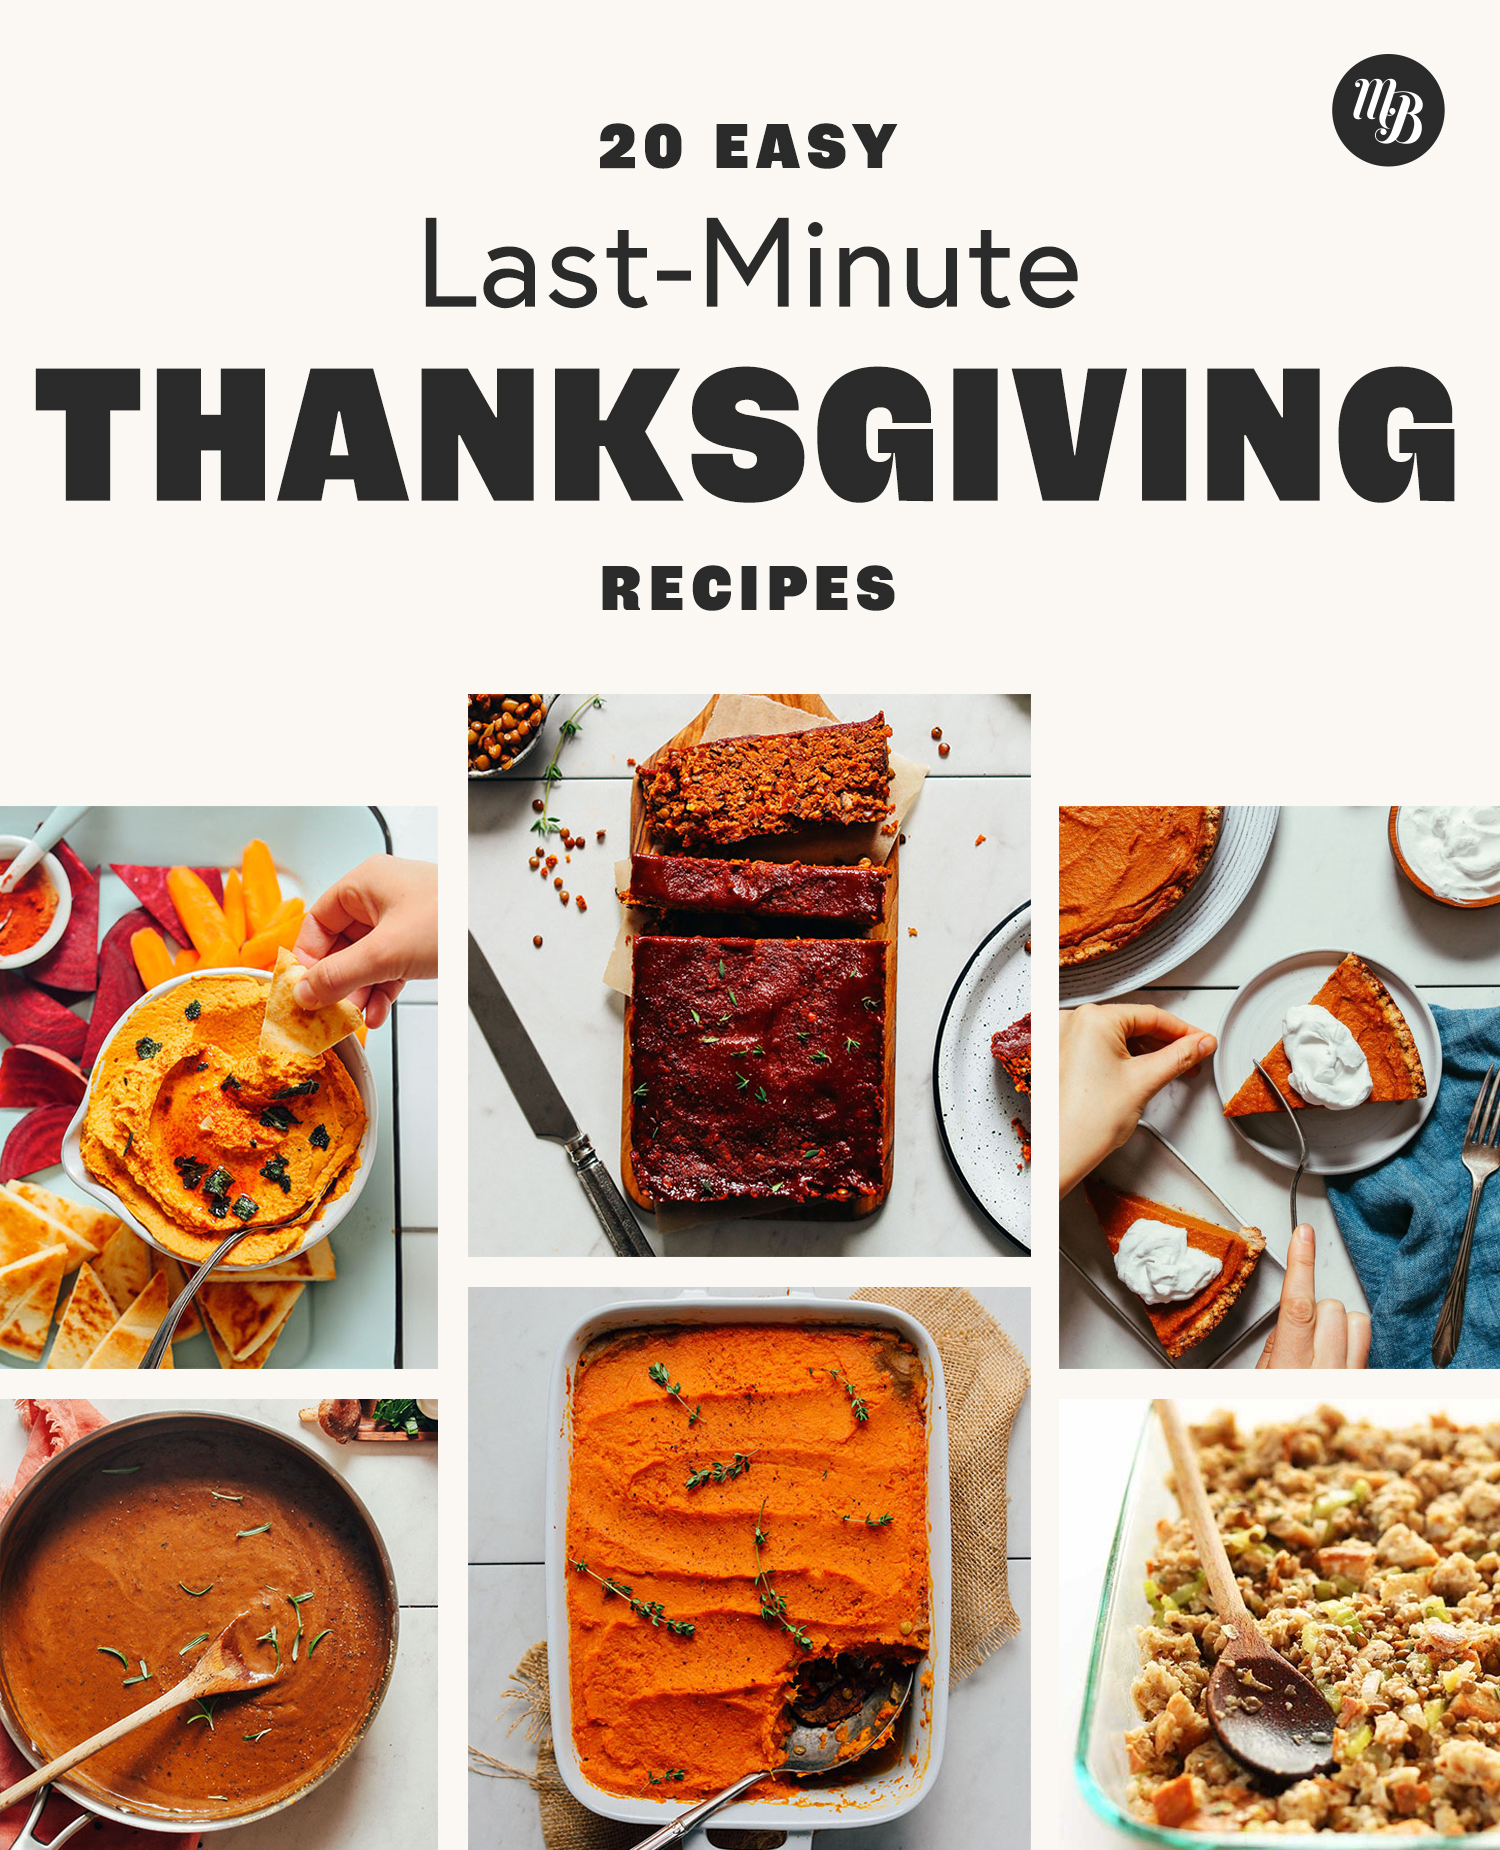 Photos of recipes in our Last-Minute Thanksgiving Recipes round-up